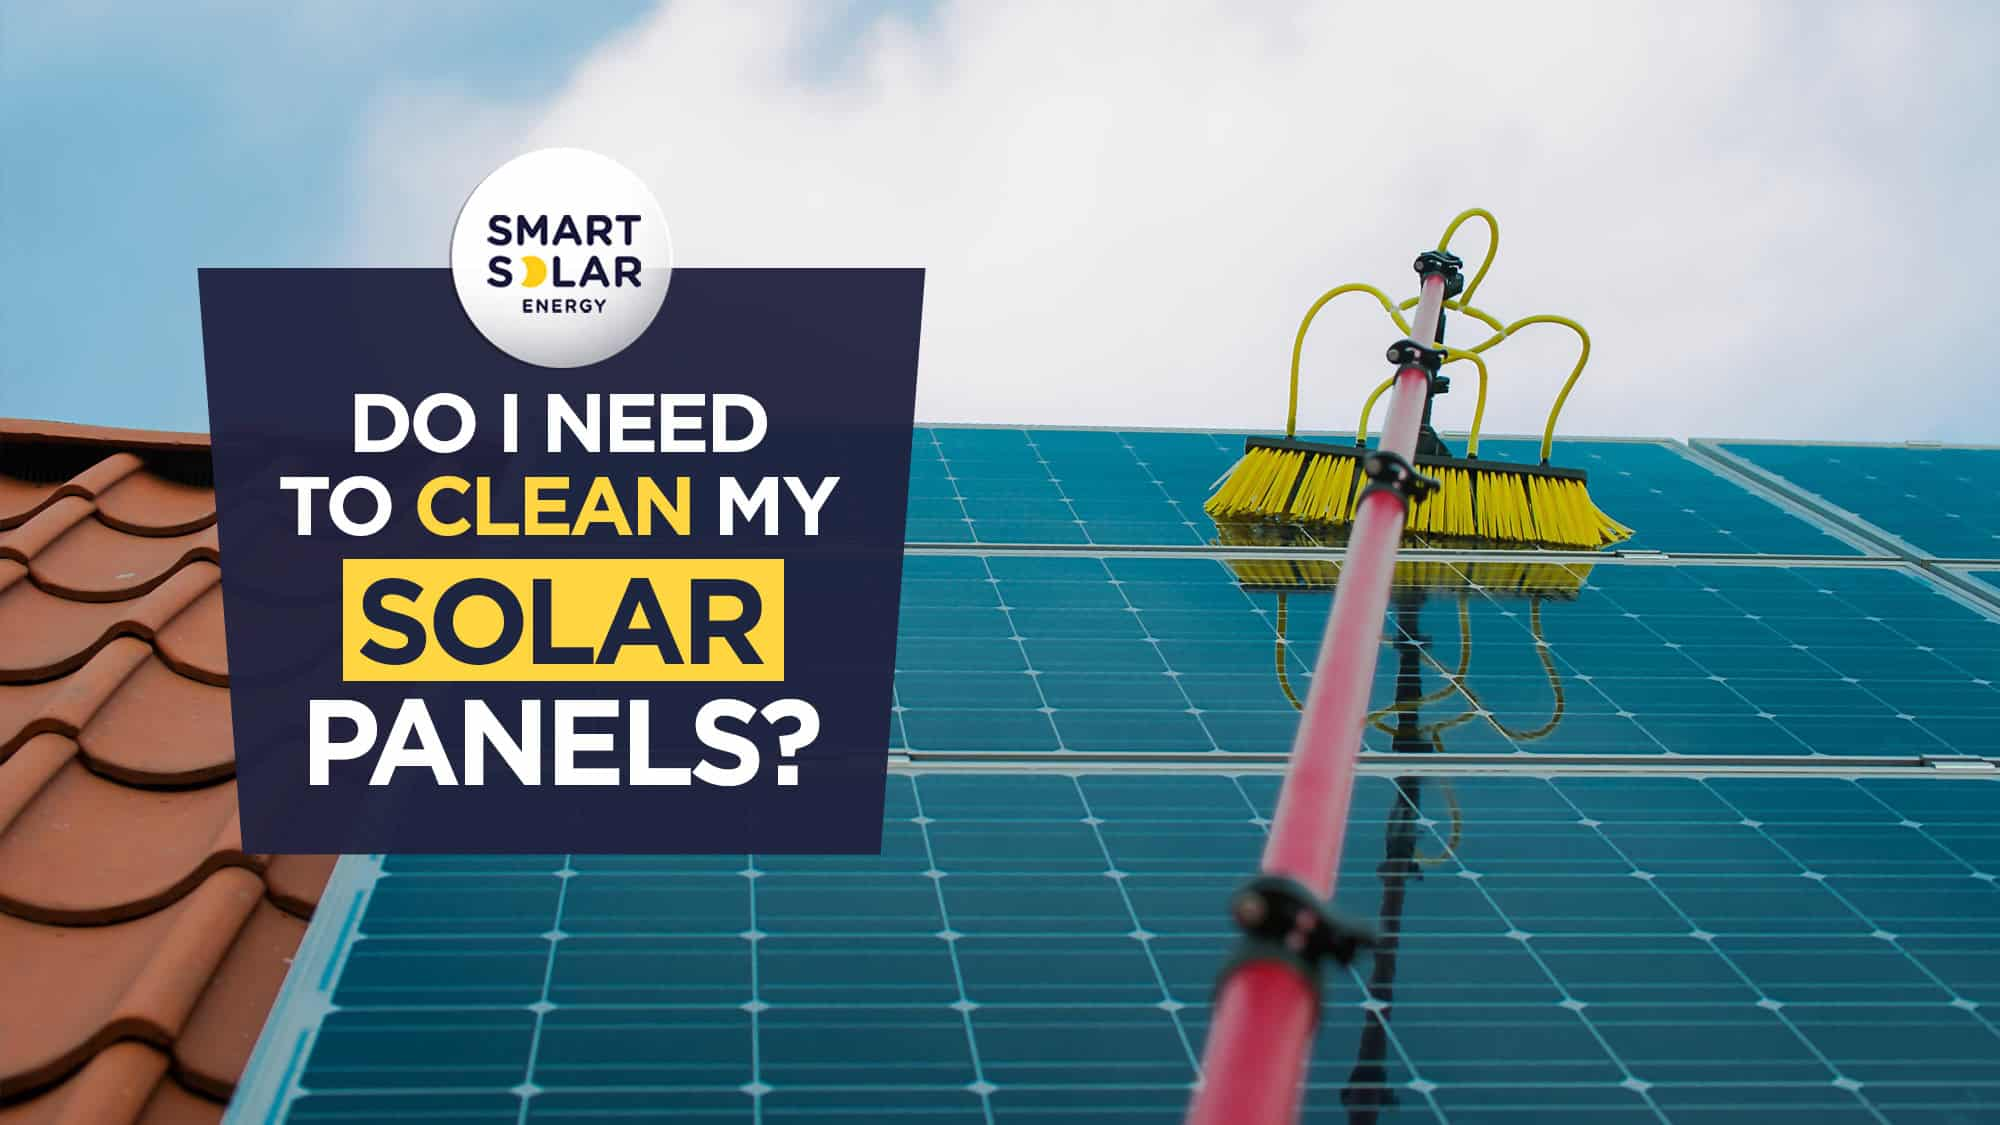 Do I need to clean my solar panels?